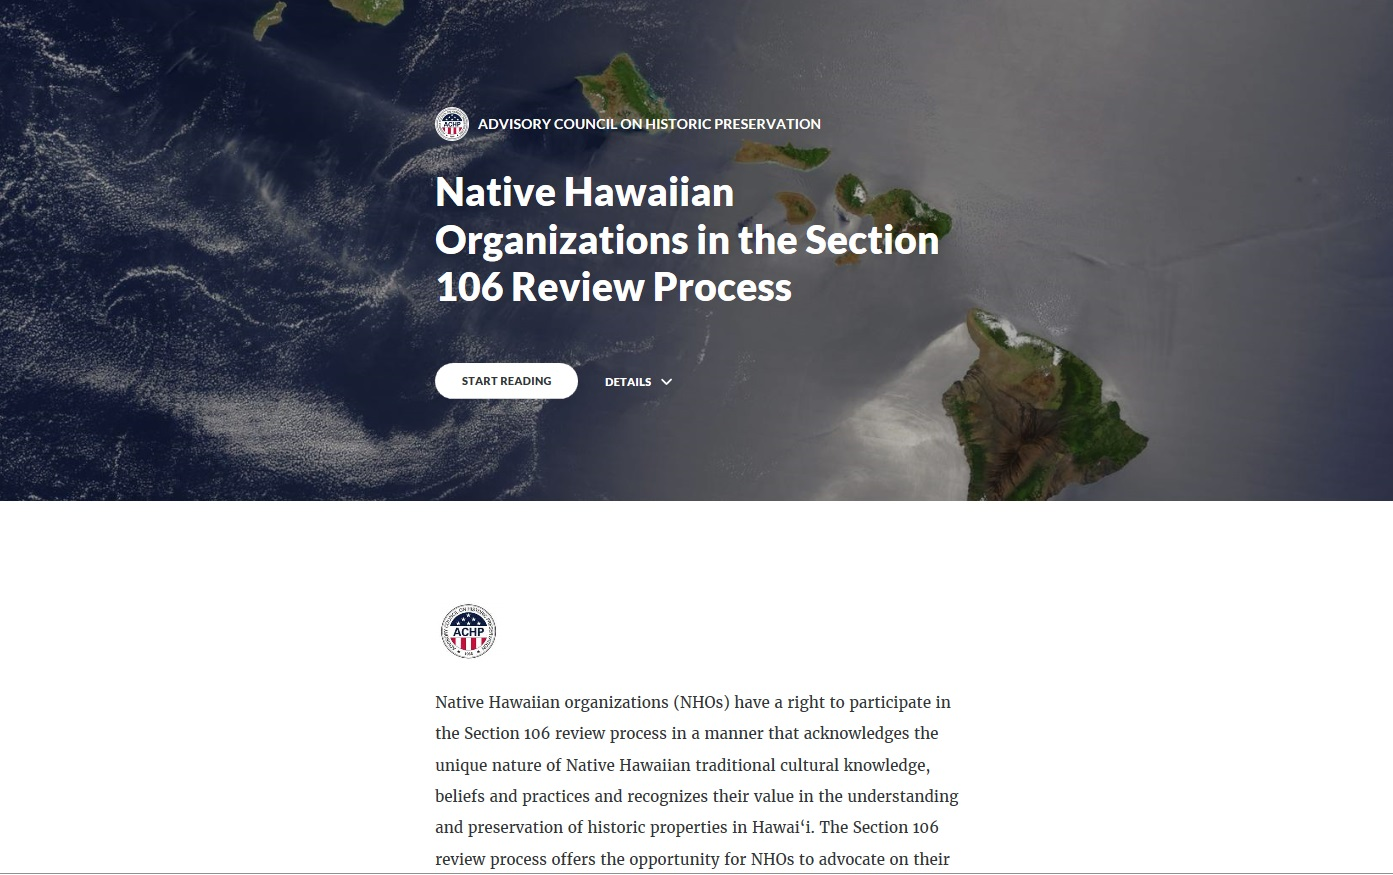 Native Hawaiian Organizations in the Section 106 Process